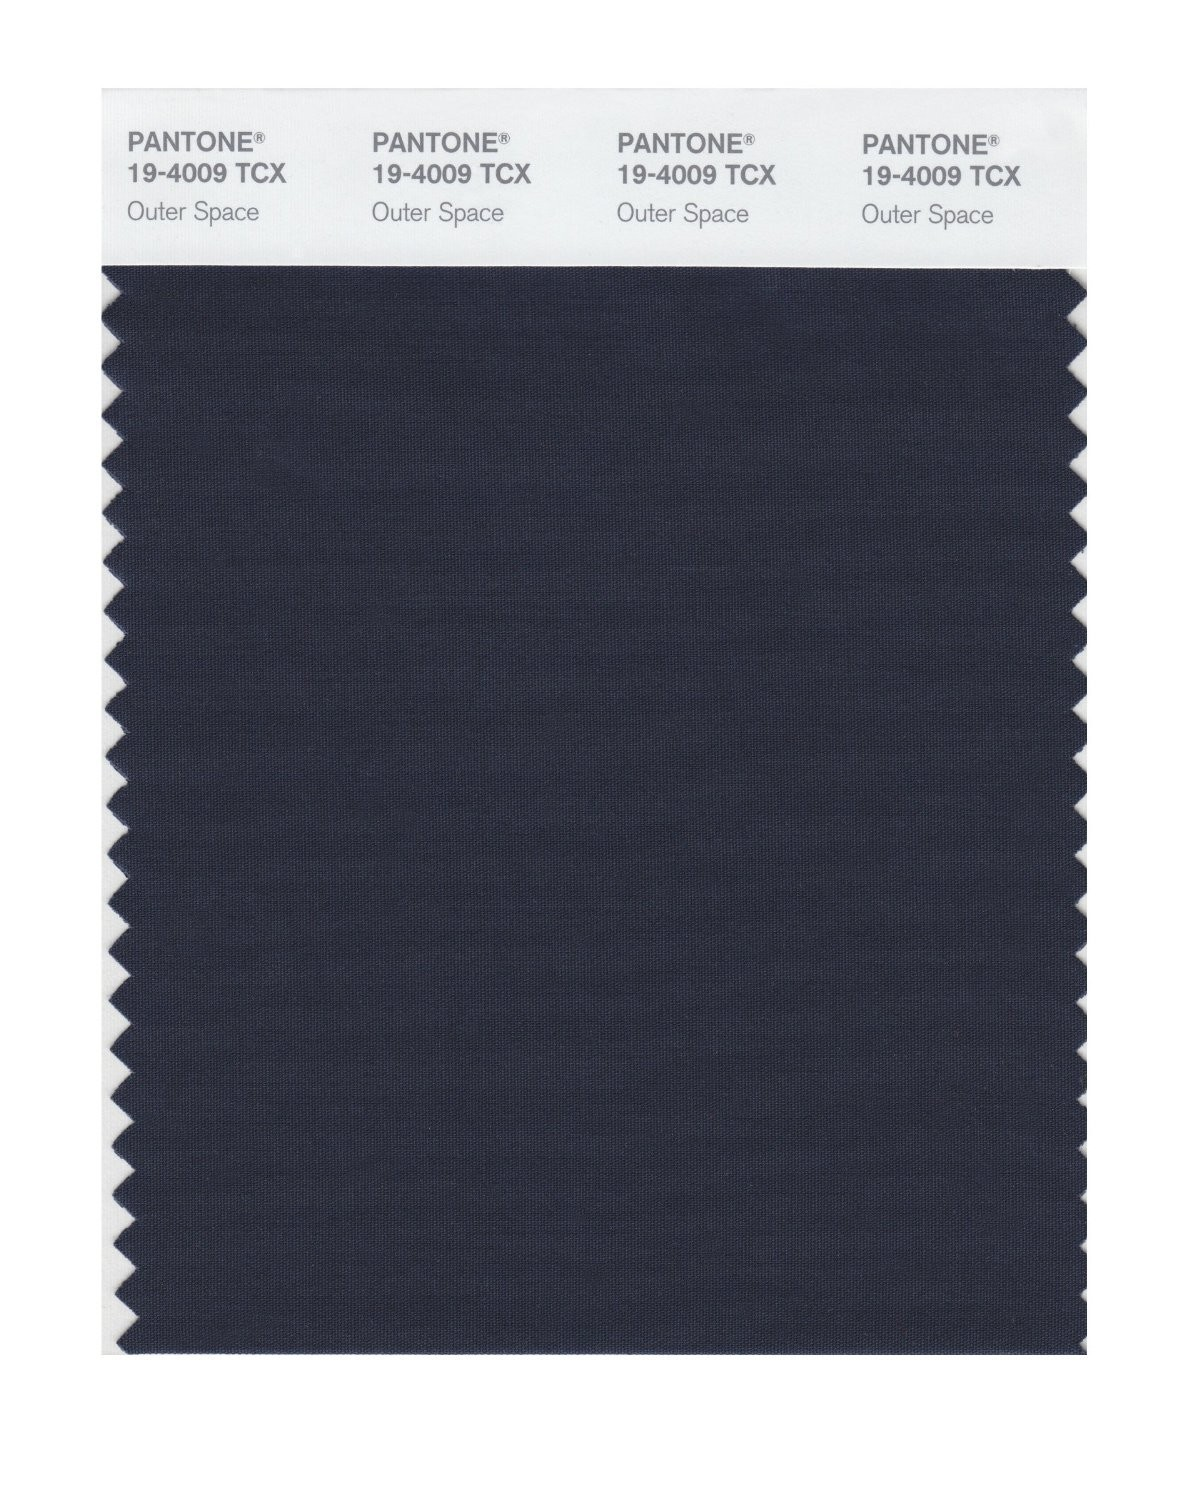 Pantone 19-4009 TCX Swatch Card Outer Space